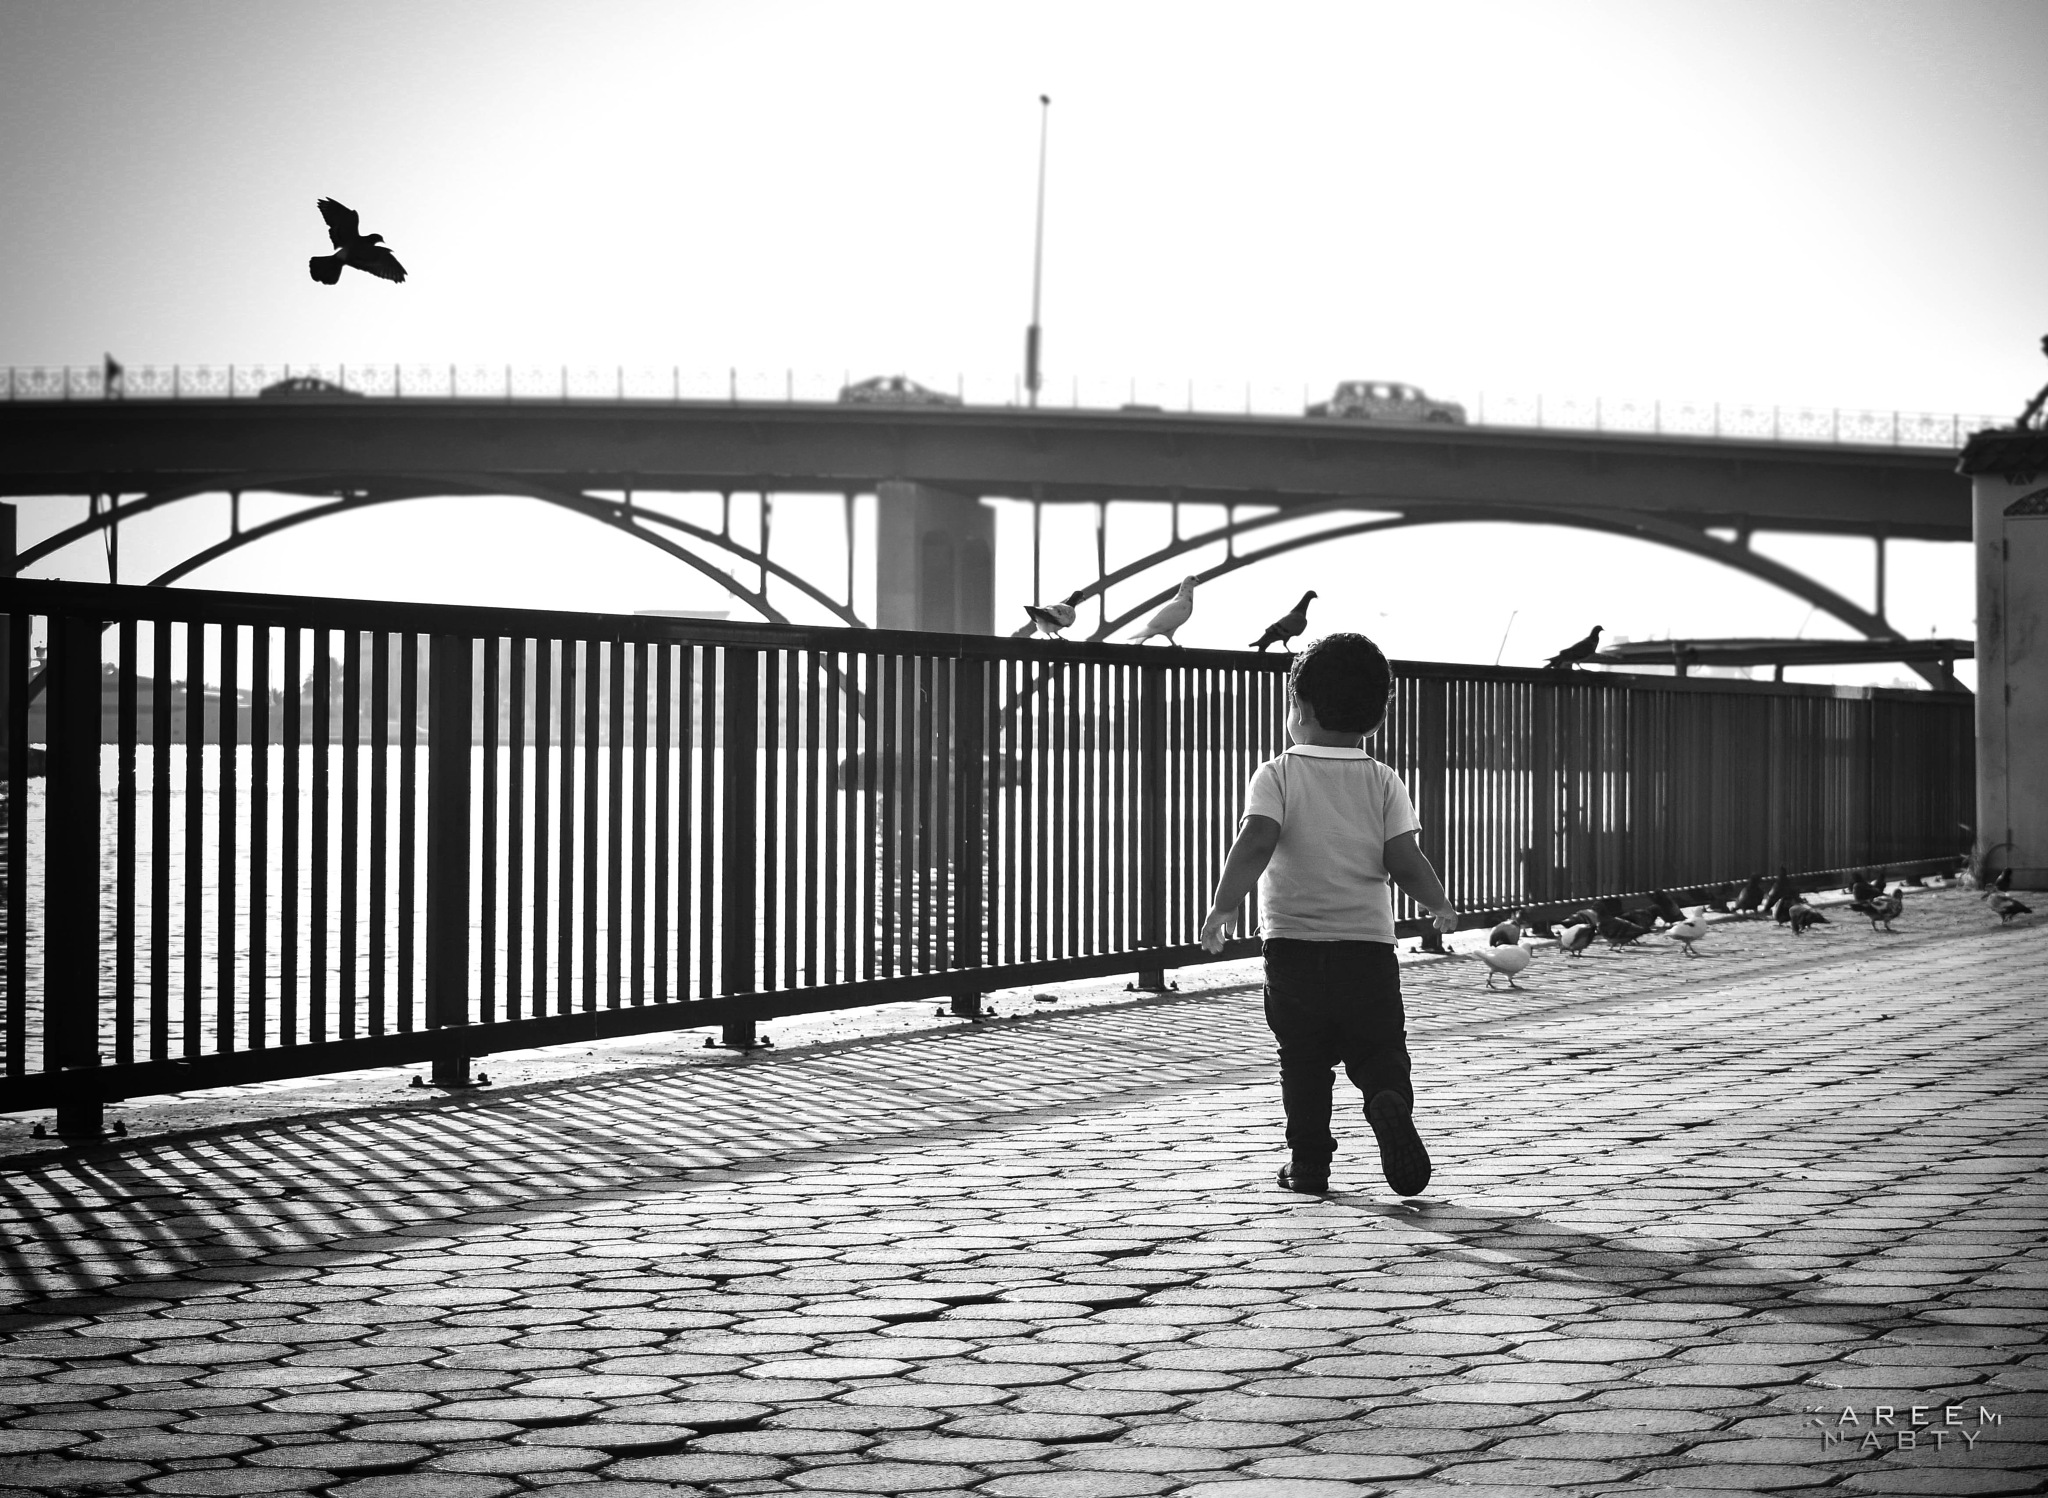 I want to fly .. by Kareem Nabty